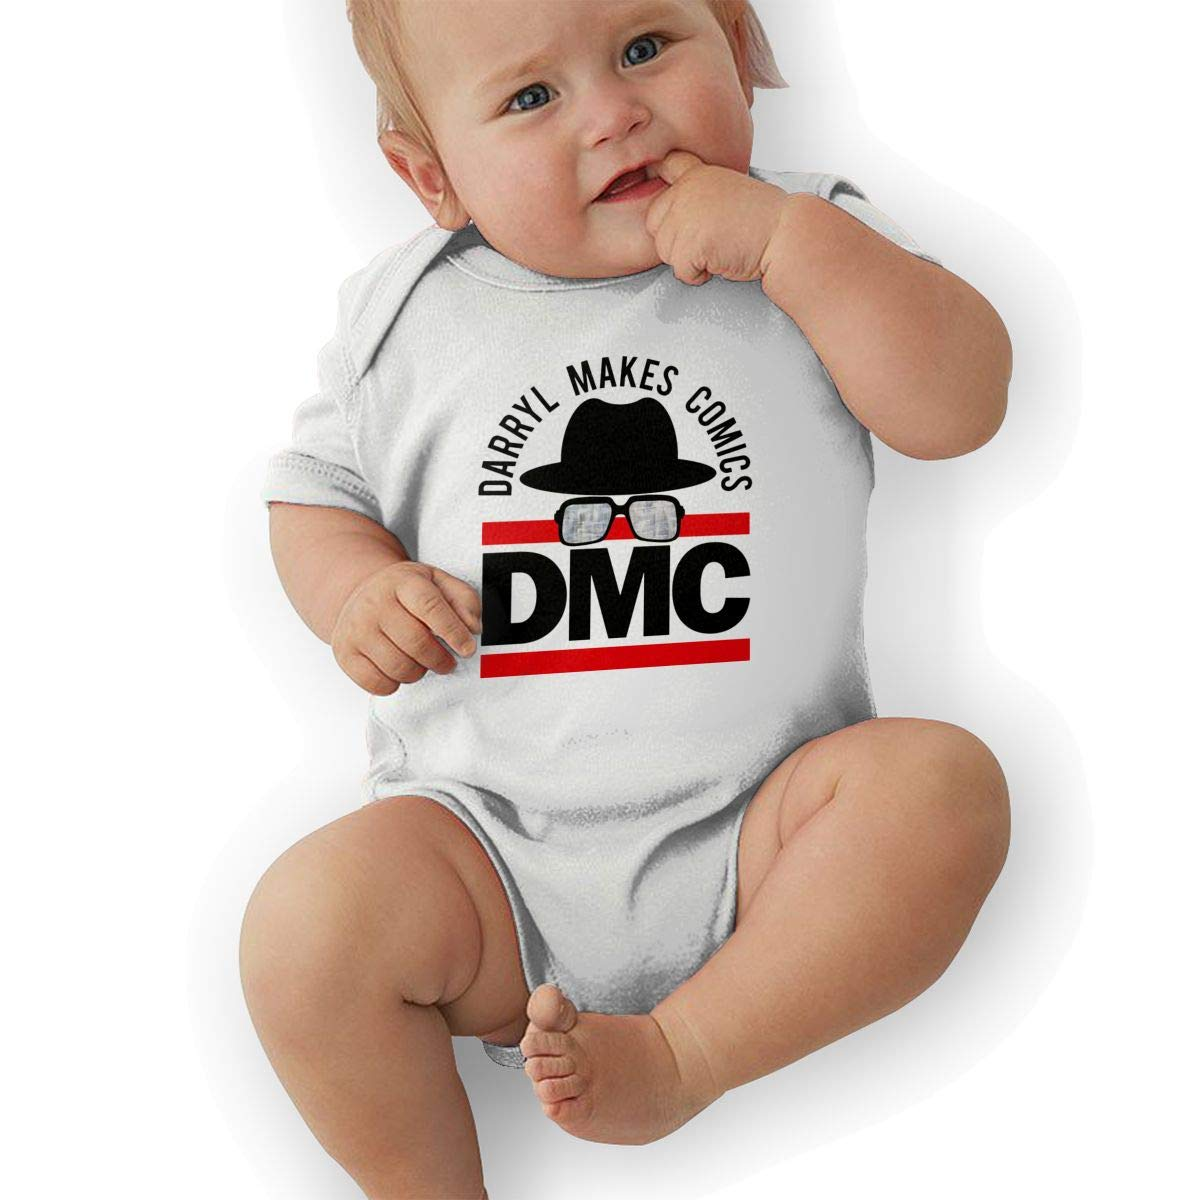 LuckyTagy Run Dmc Unisex Particular Boys /& Girls Romper Baby BoyPlay Suit White